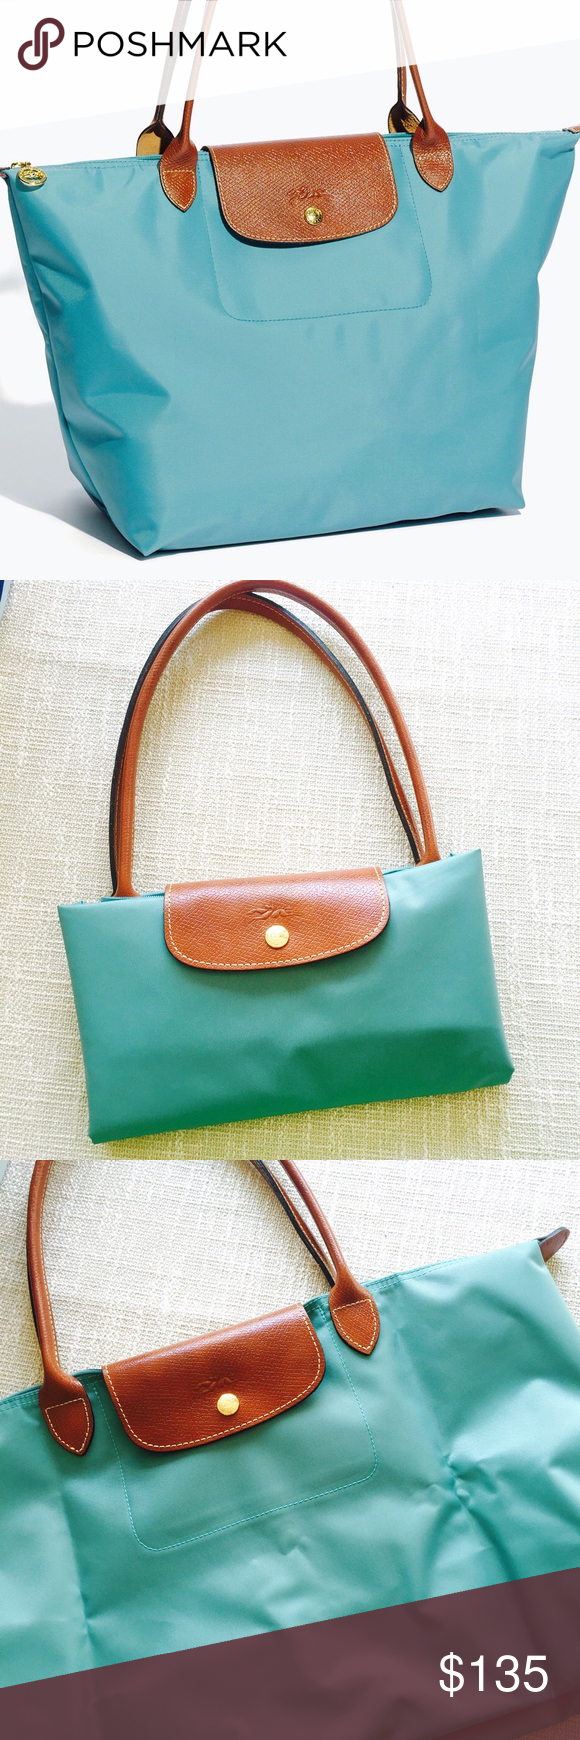 ef3acab2b9 Brand new Longchamp Le Pliage in mint Brand new never used Longchamp le  Pliage large size in beautiful mint color. One of my favorite colors for  Longchamp ...